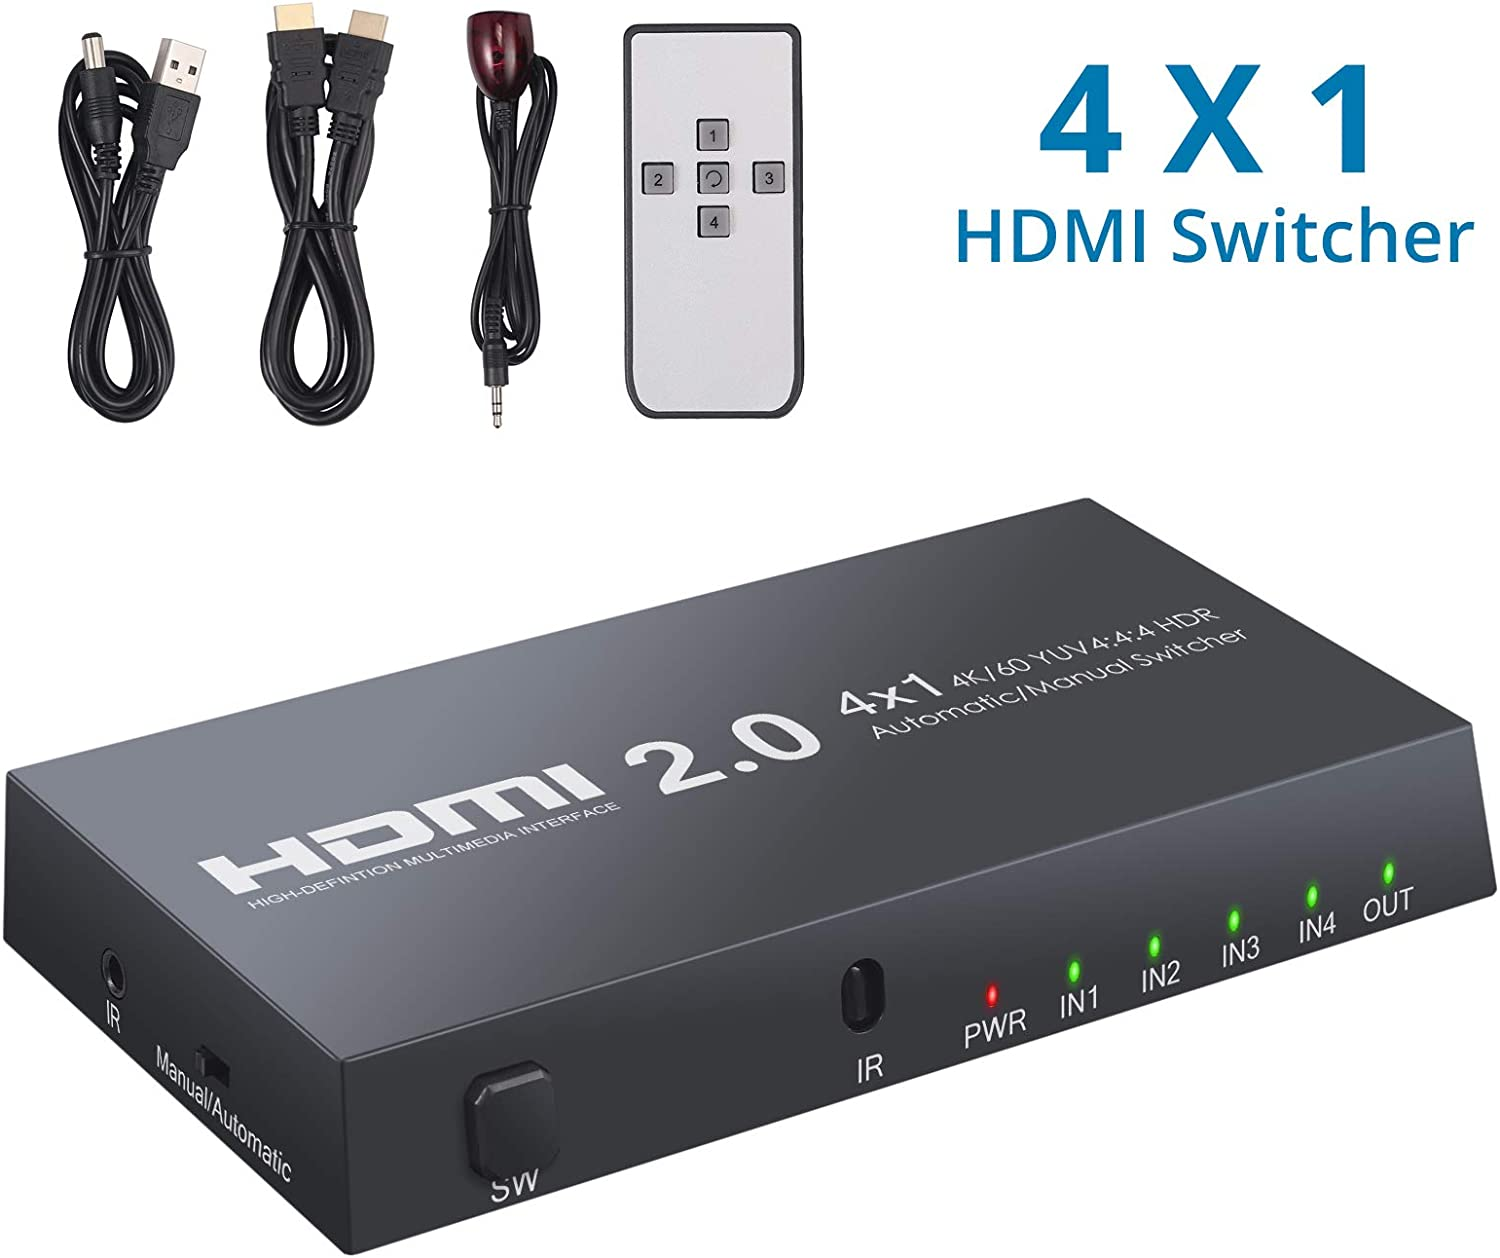 4K@60hz 4 Port 4 X 1 HDMI Switcher Selector 18Gbps Support PS3//4//5 LPCM7.1 DSD,3D etc CAMWAY HDMI Switch with Audio Out IR Wireless Remote PCM Dolby TrueHD VCD//DVD Plyer,Blue-ray Player,DTS-HD